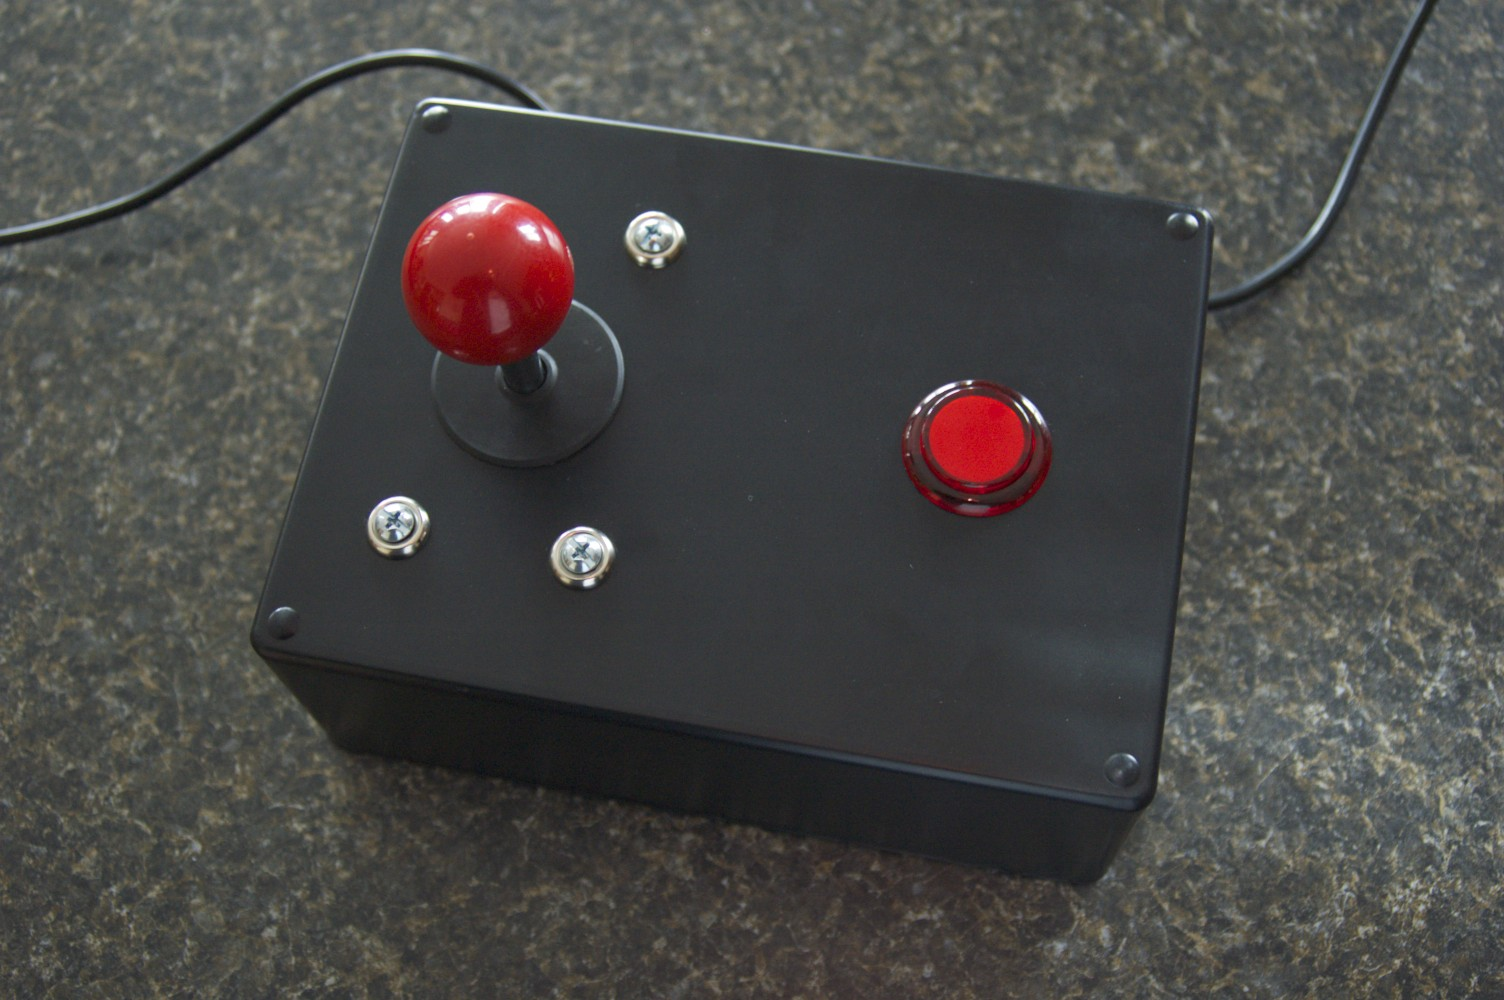 Make Your Own Atari Joystick: 6 Steps (with Pictures)